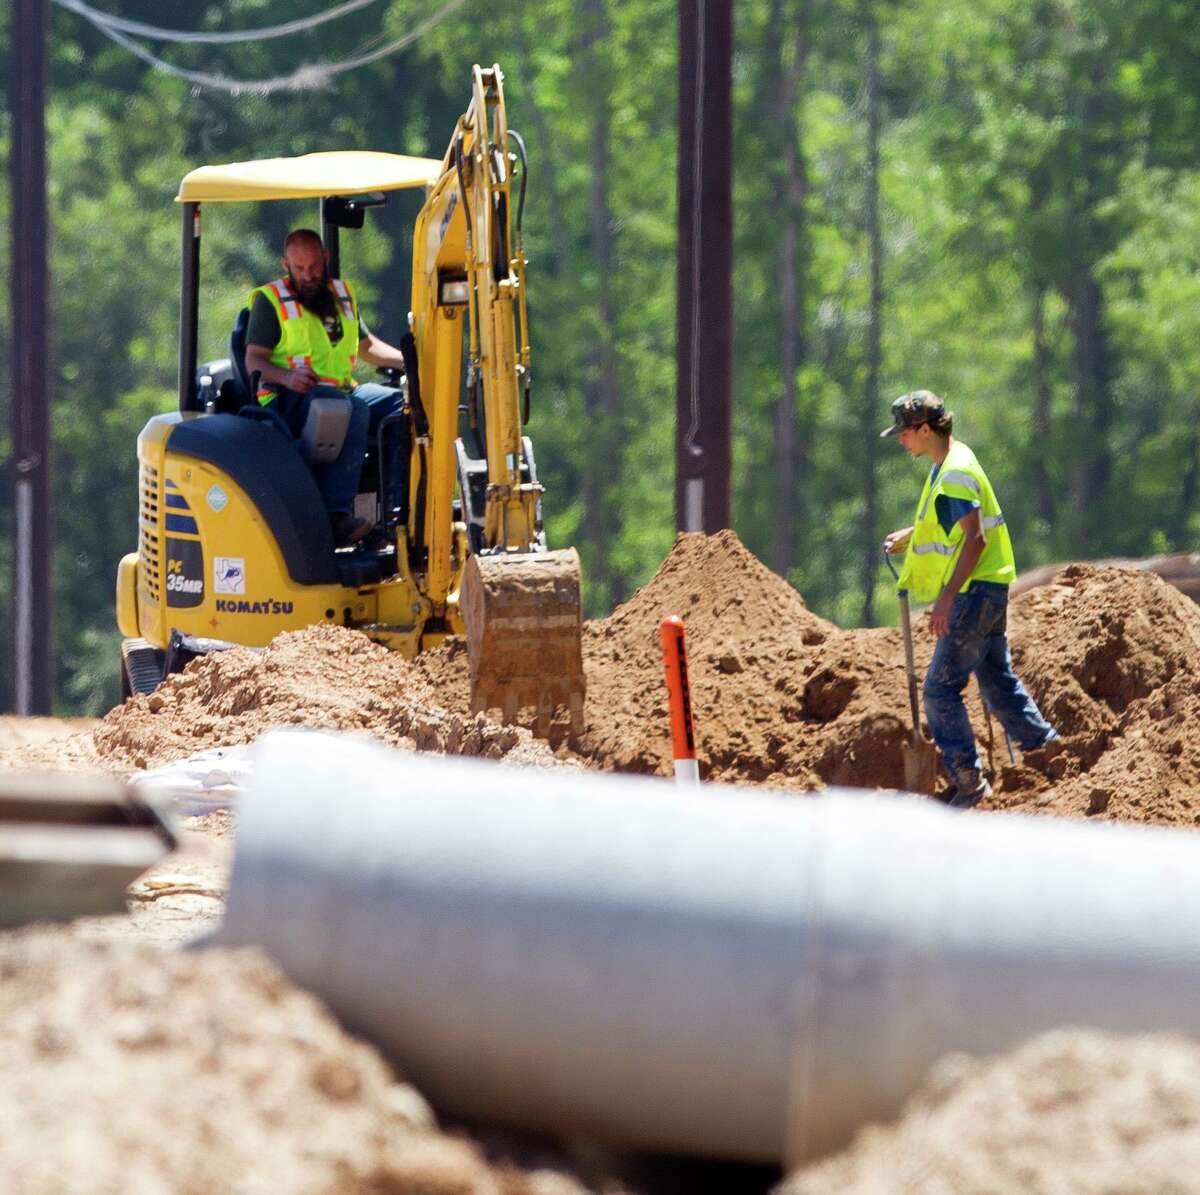 Harris County increased the minimum prevailing wage for construction laborers working on county contracts to $15 per hour, and added other workforce protections.